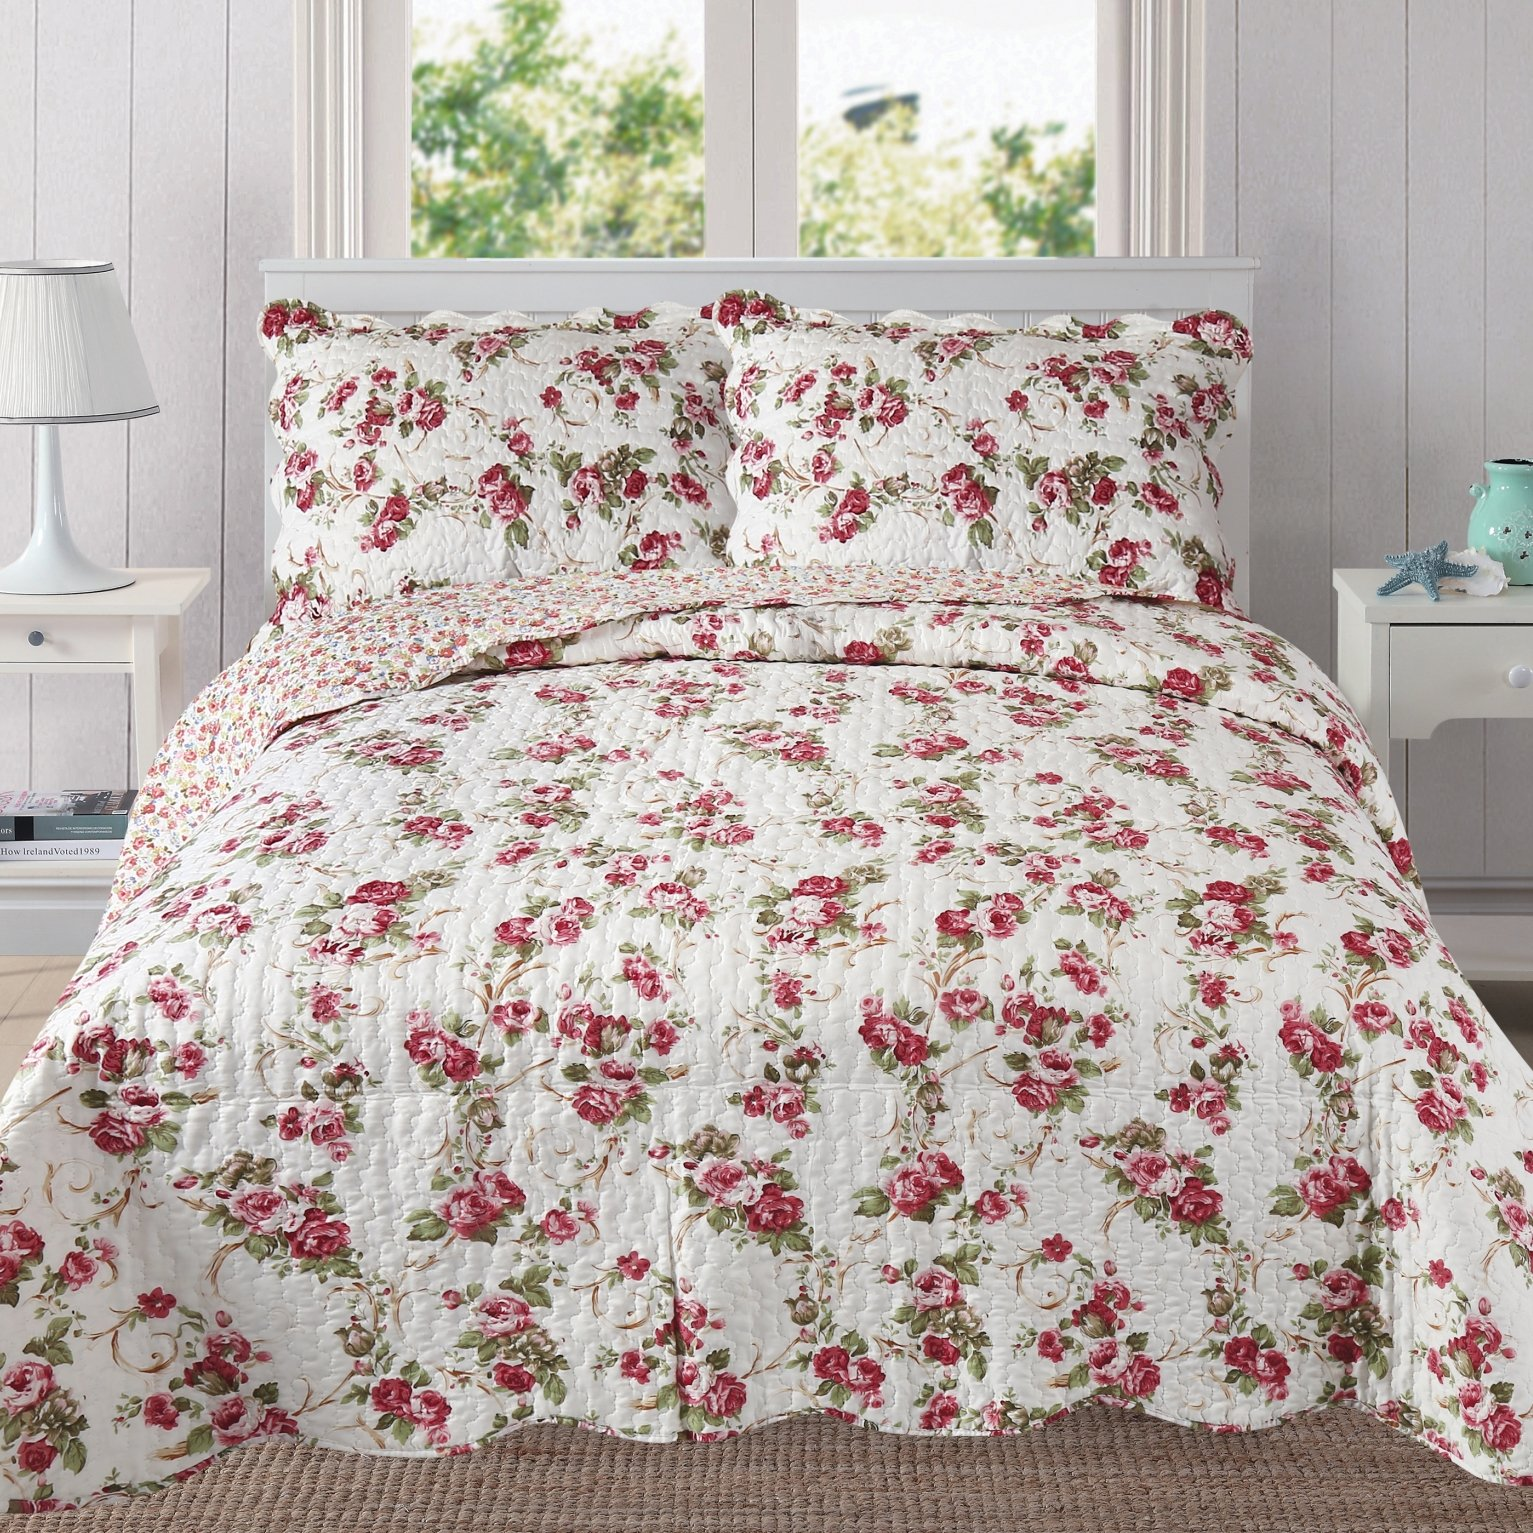 Mohap Reversible Quilt Set with Shams Queen Size Hypoallergenic for All Season Pattern#12